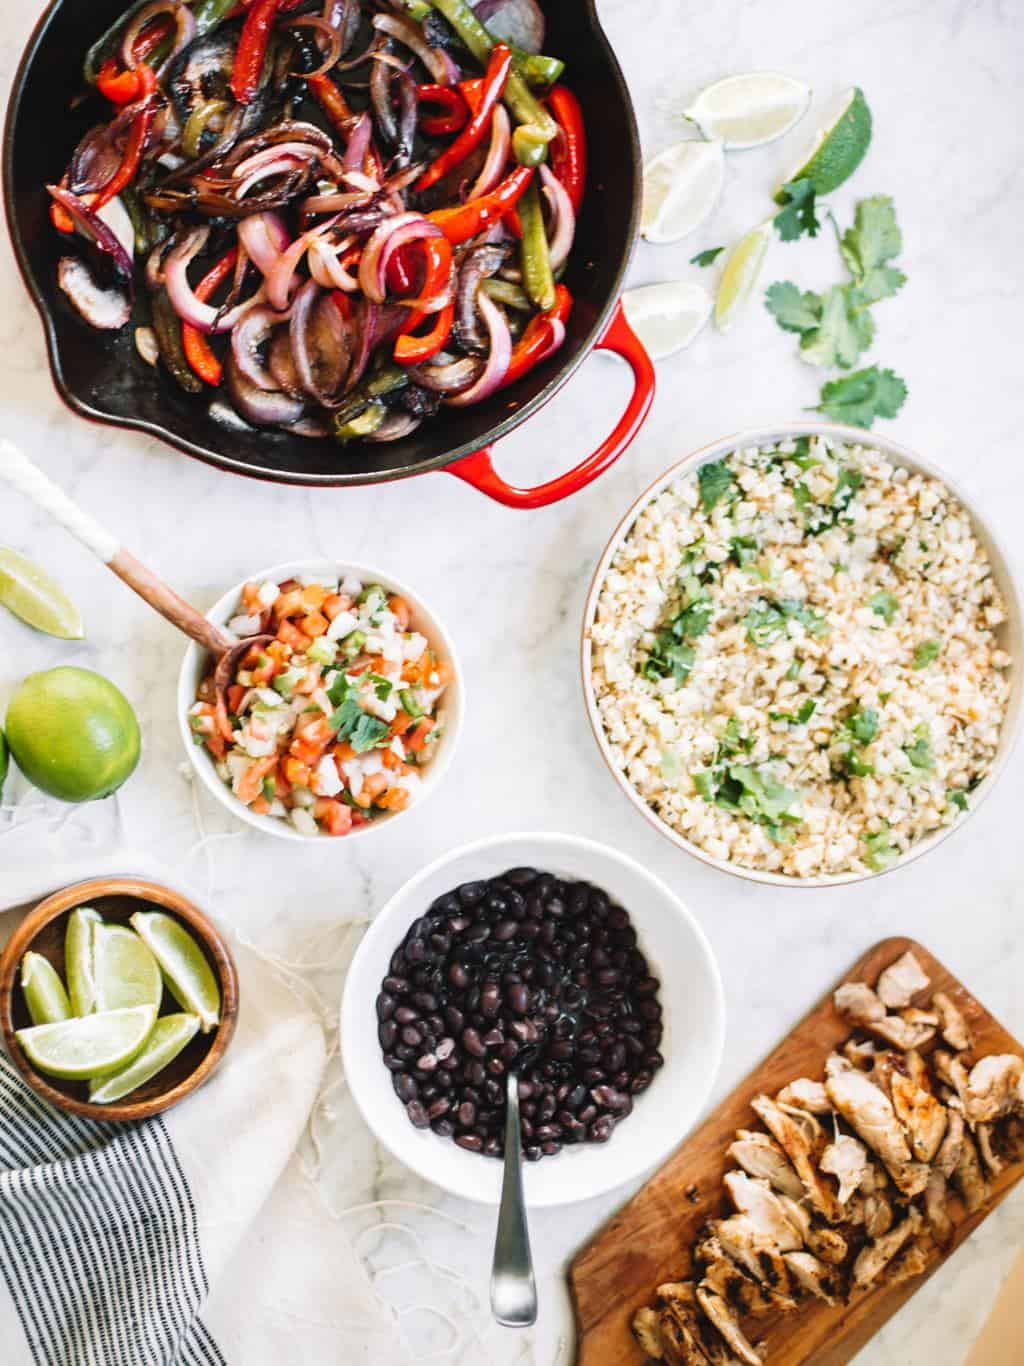 Chipotle style burrito bowls at home or for meal prep! These healthy bowls are made with cauliflower rice, juicy chicken, salsa and avocado crema!